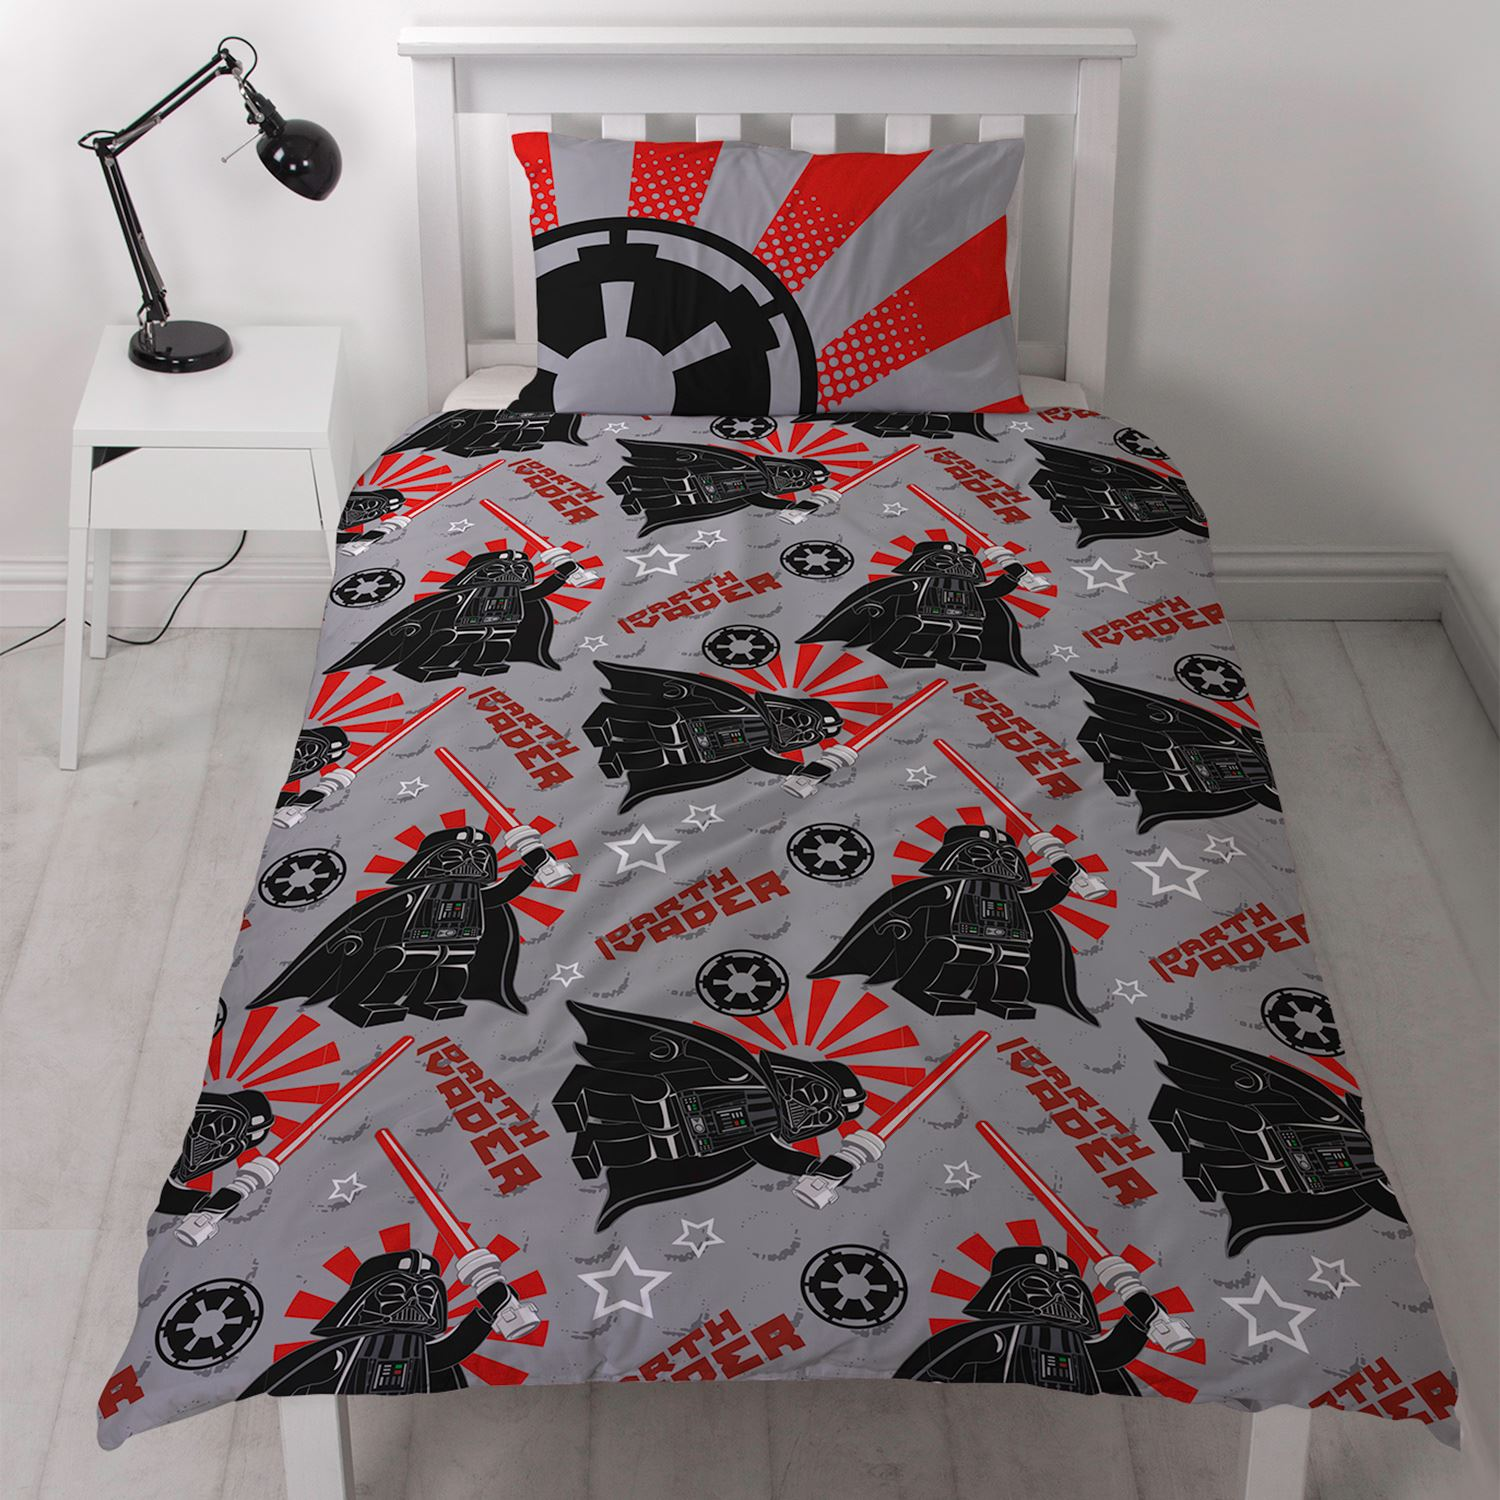 Lego Star Wars Imperial Single Duvet Cover Set Darth Vader